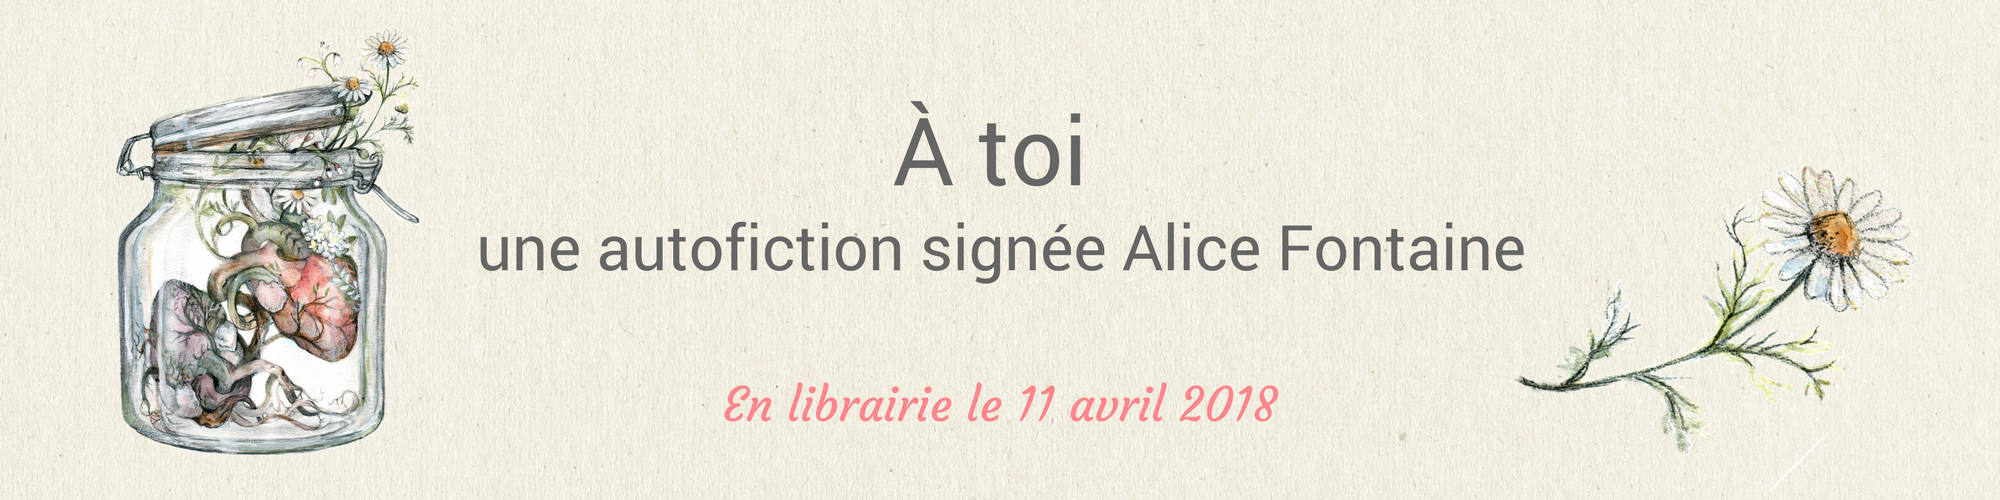 à toi alice fontaine autofiction